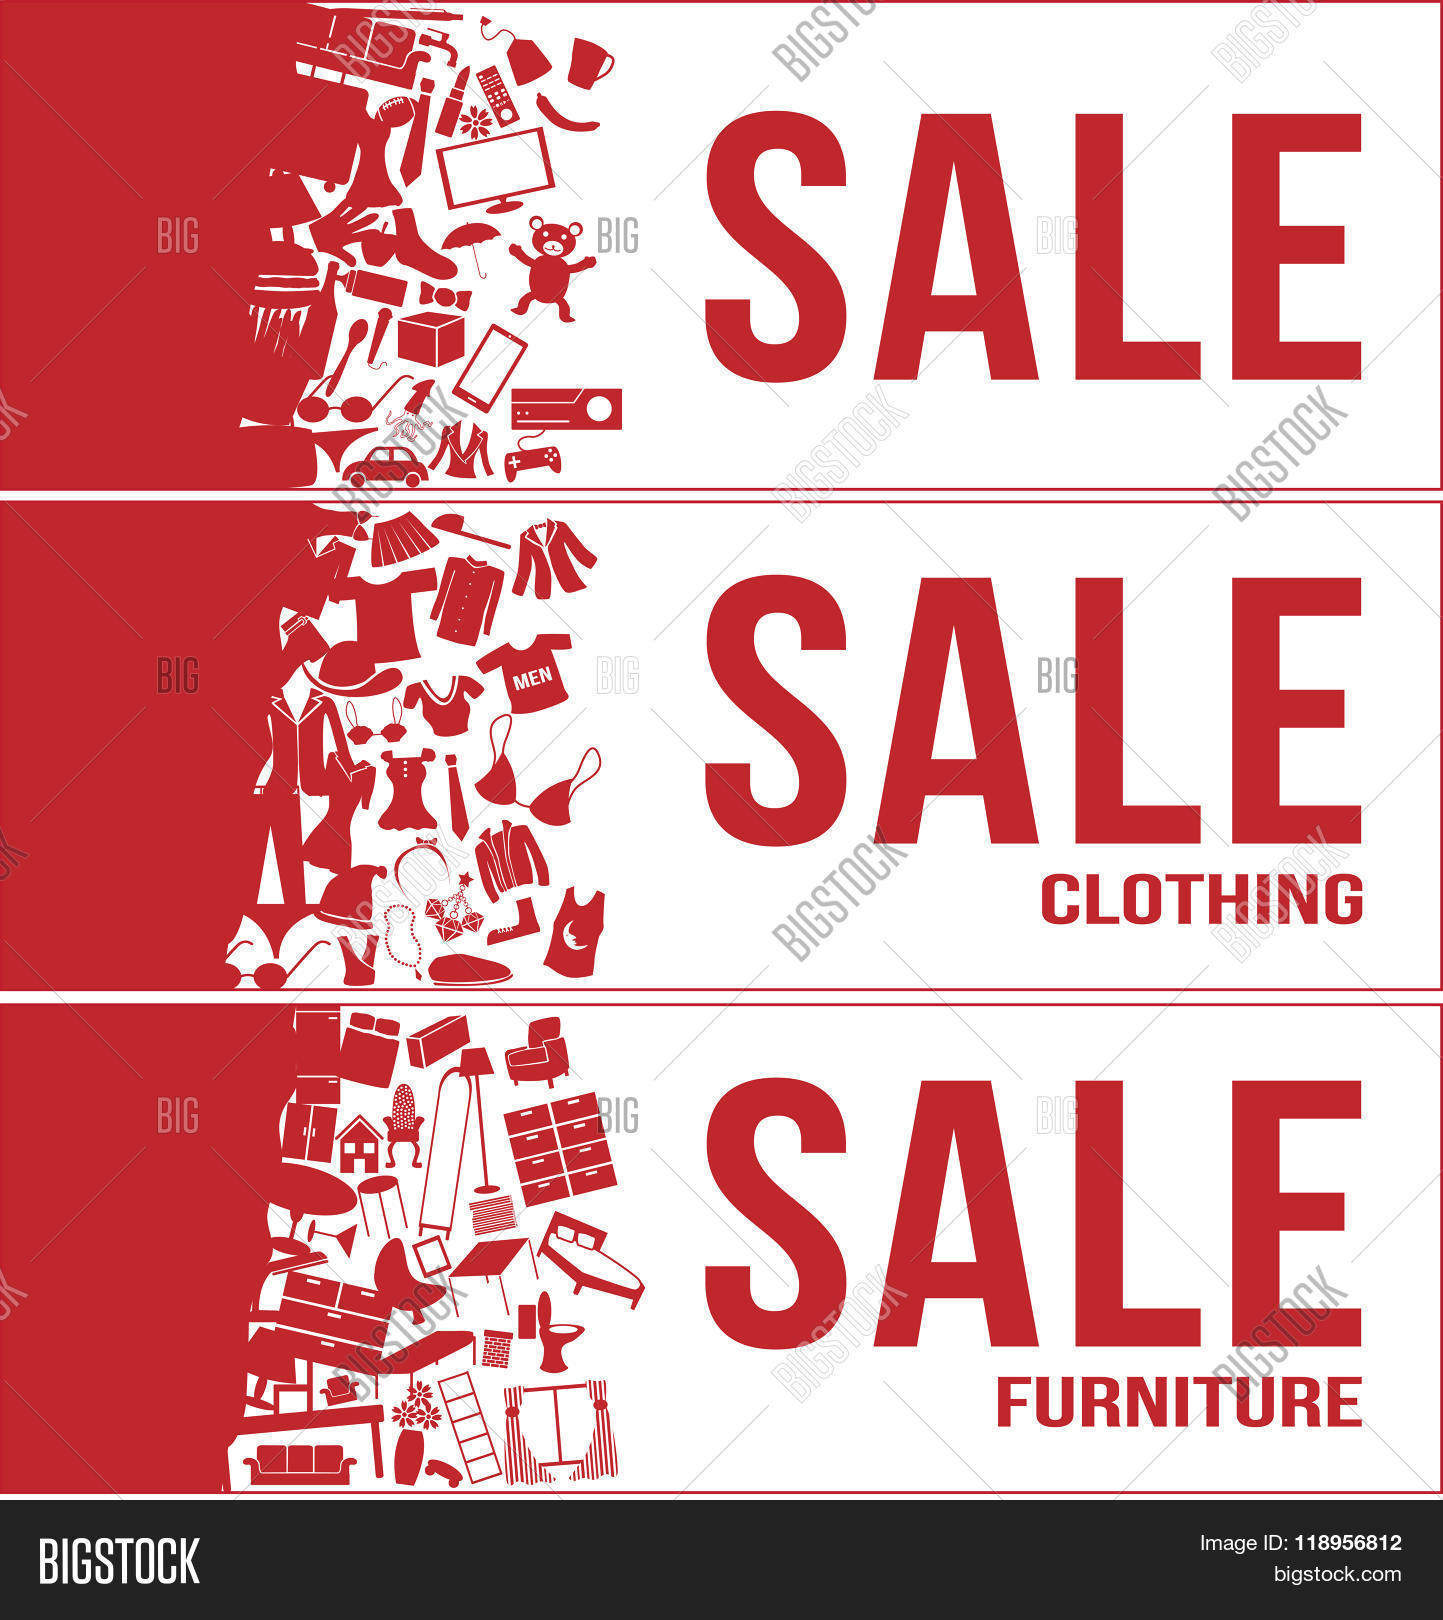 Furniture Store Sale Tags Sale Tags For Furniture Stores Retail Tag Mfg Corp Sale Price Tags